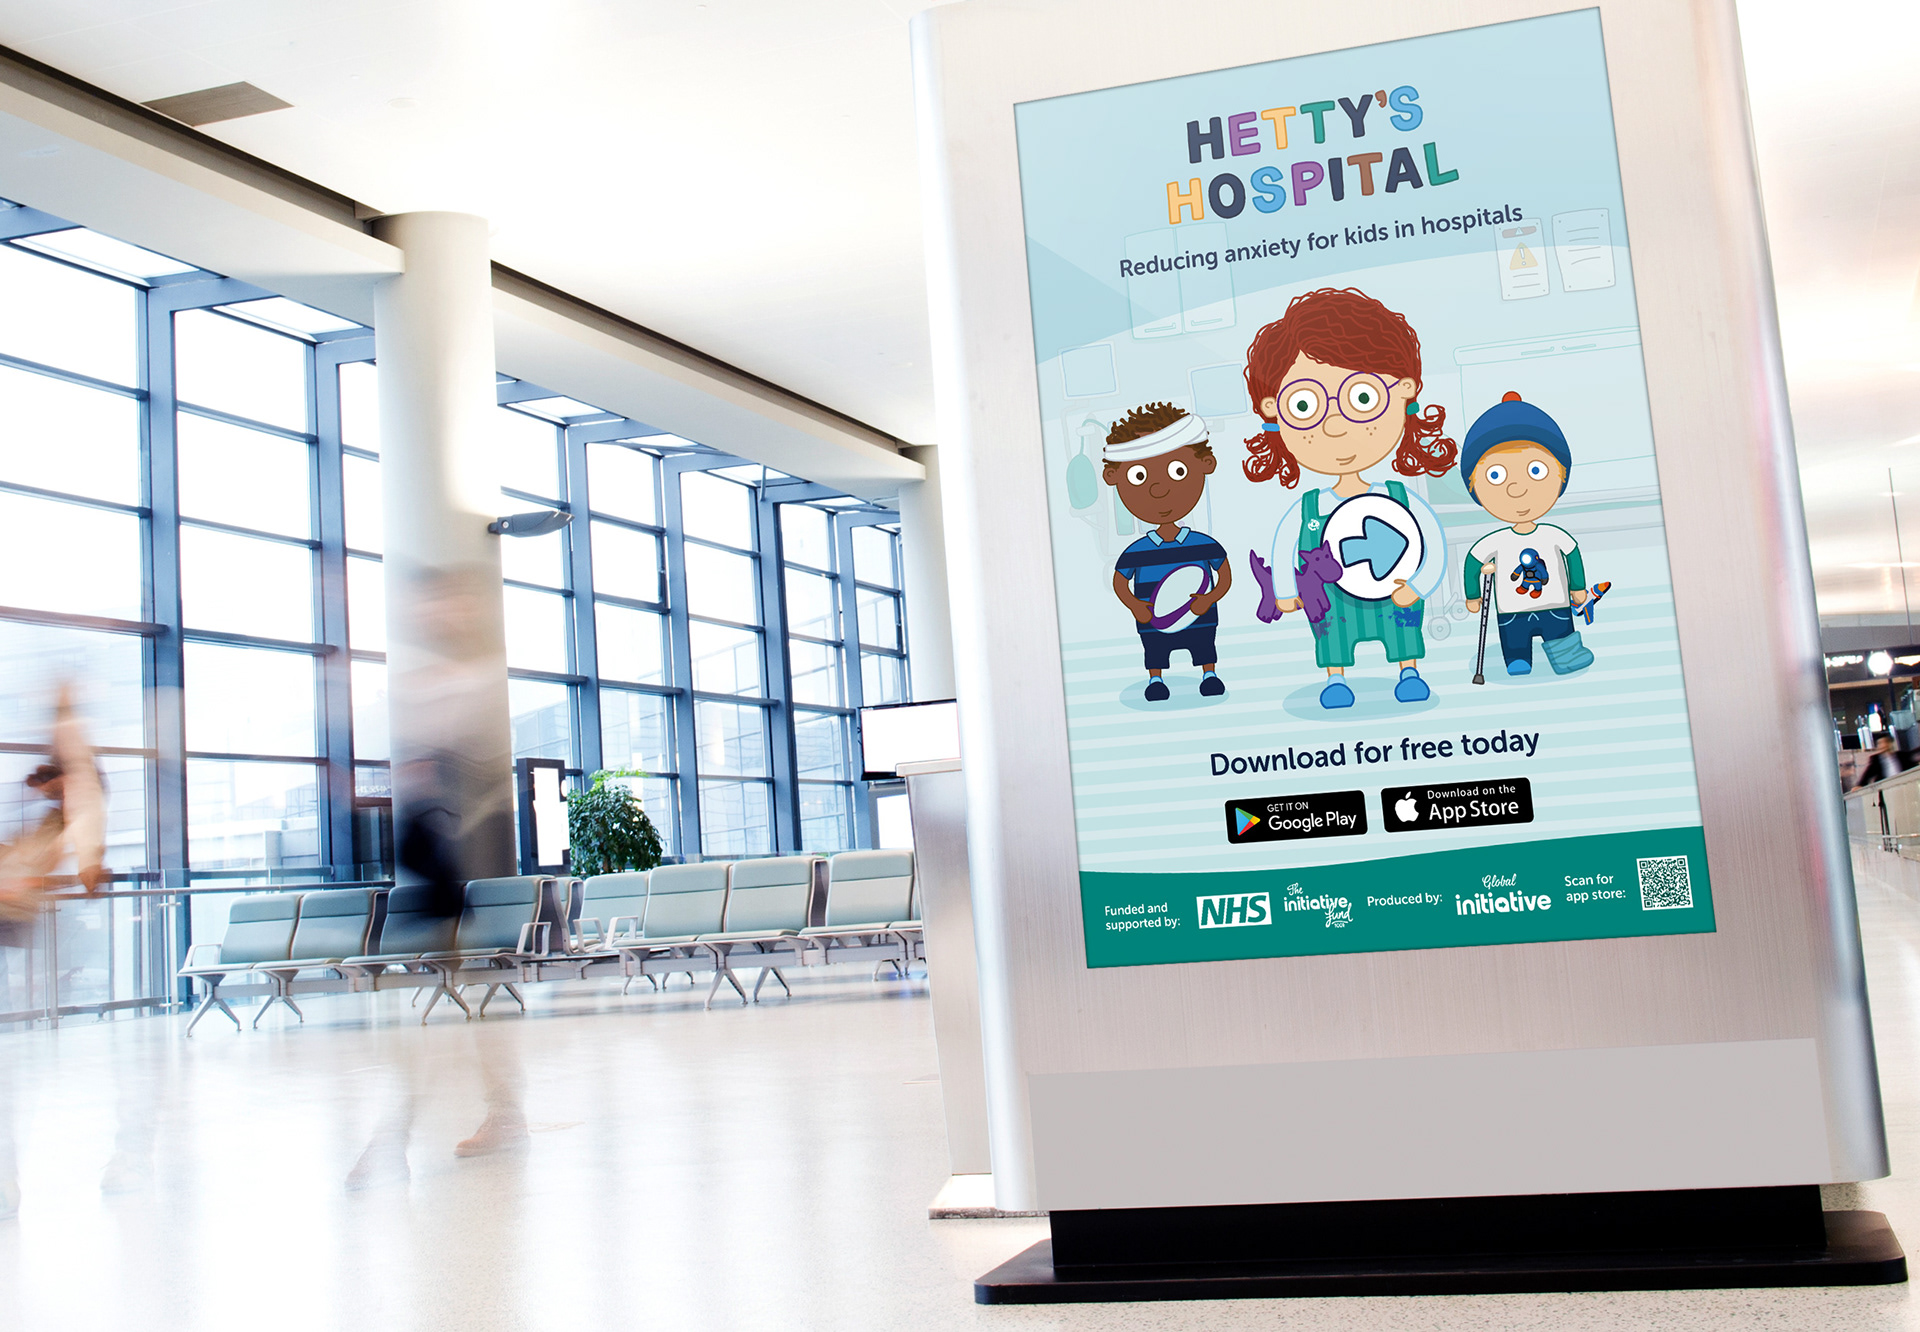 Promoting Hetty's Hospital in GP waiting rooms